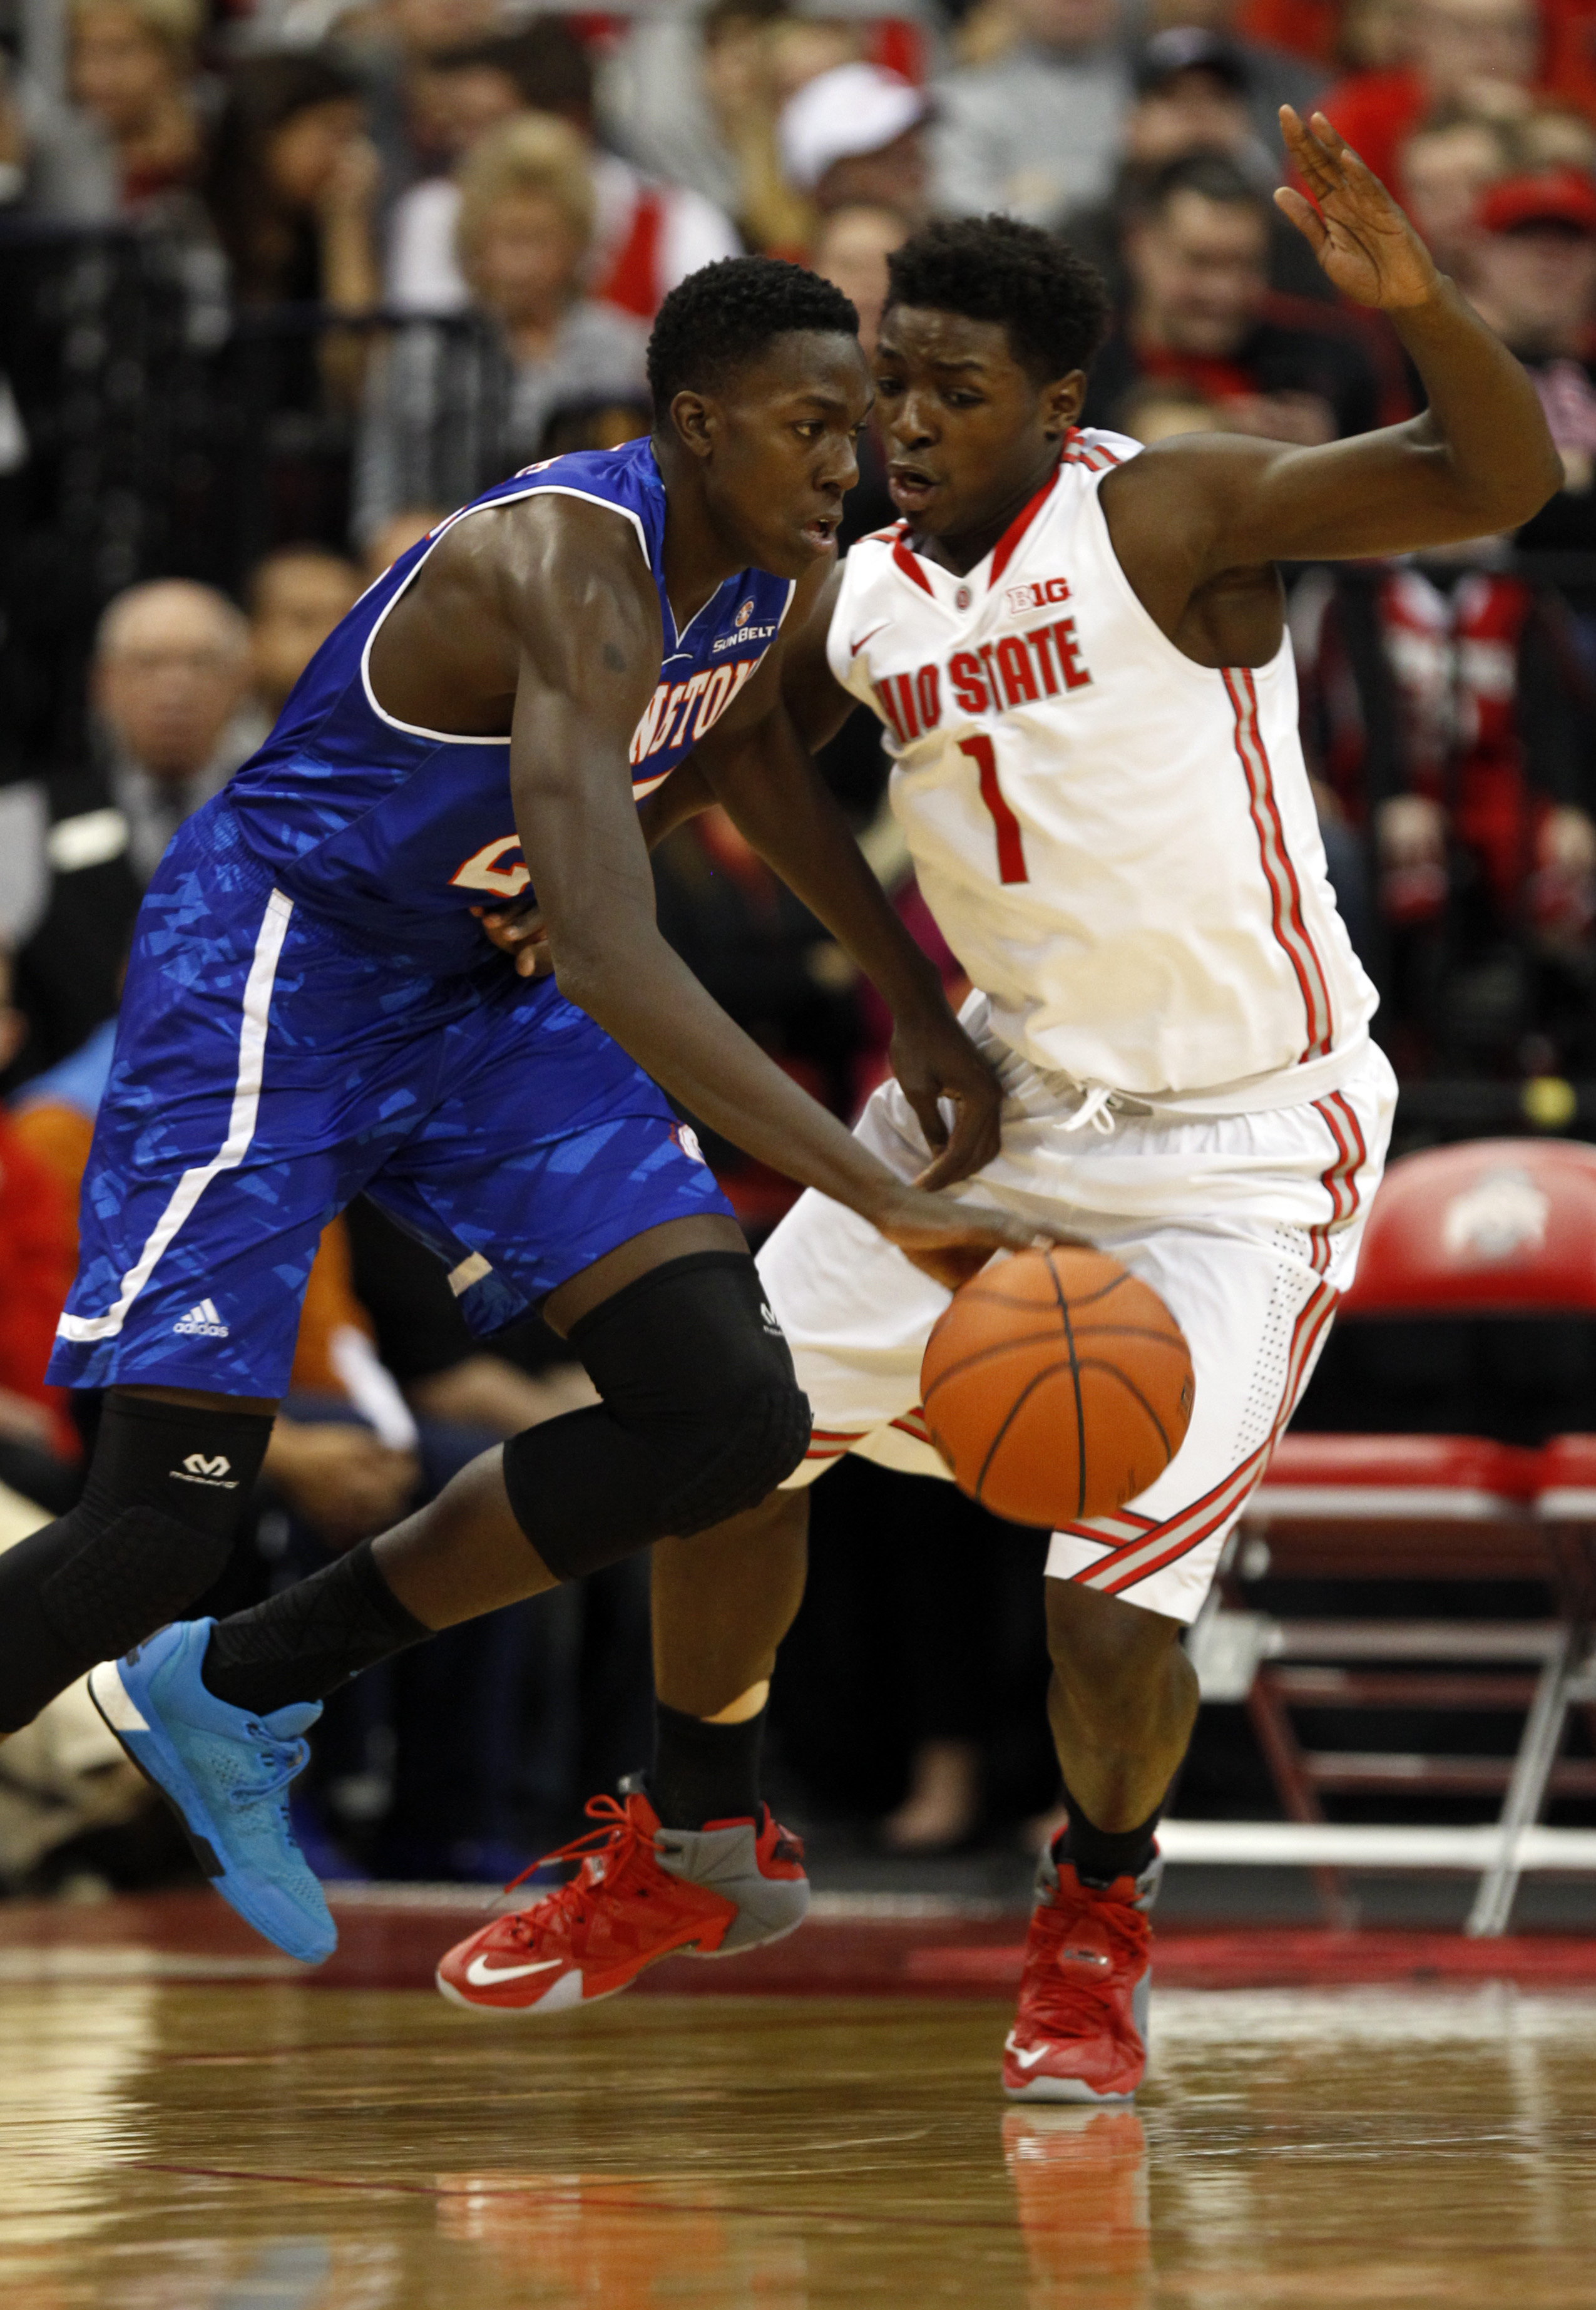 Texas-Arlington's Kevin Hervey, left, drives against Ohio State's Jae'Sean Tate during the second half of an NCAA college basketball game in Columbus, Ohio, Friday, Nov. 20, 2015. (AP Photo/Paul Vernon)